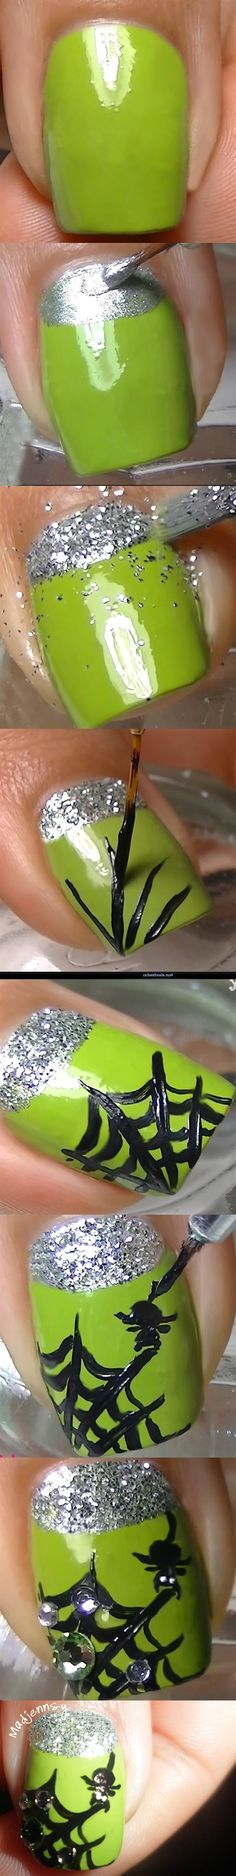 Step-by-Step Nail Art Tutorials // In need of a detox? 10% off using our discount code 'Pin10' at www.ThinTea.com.au